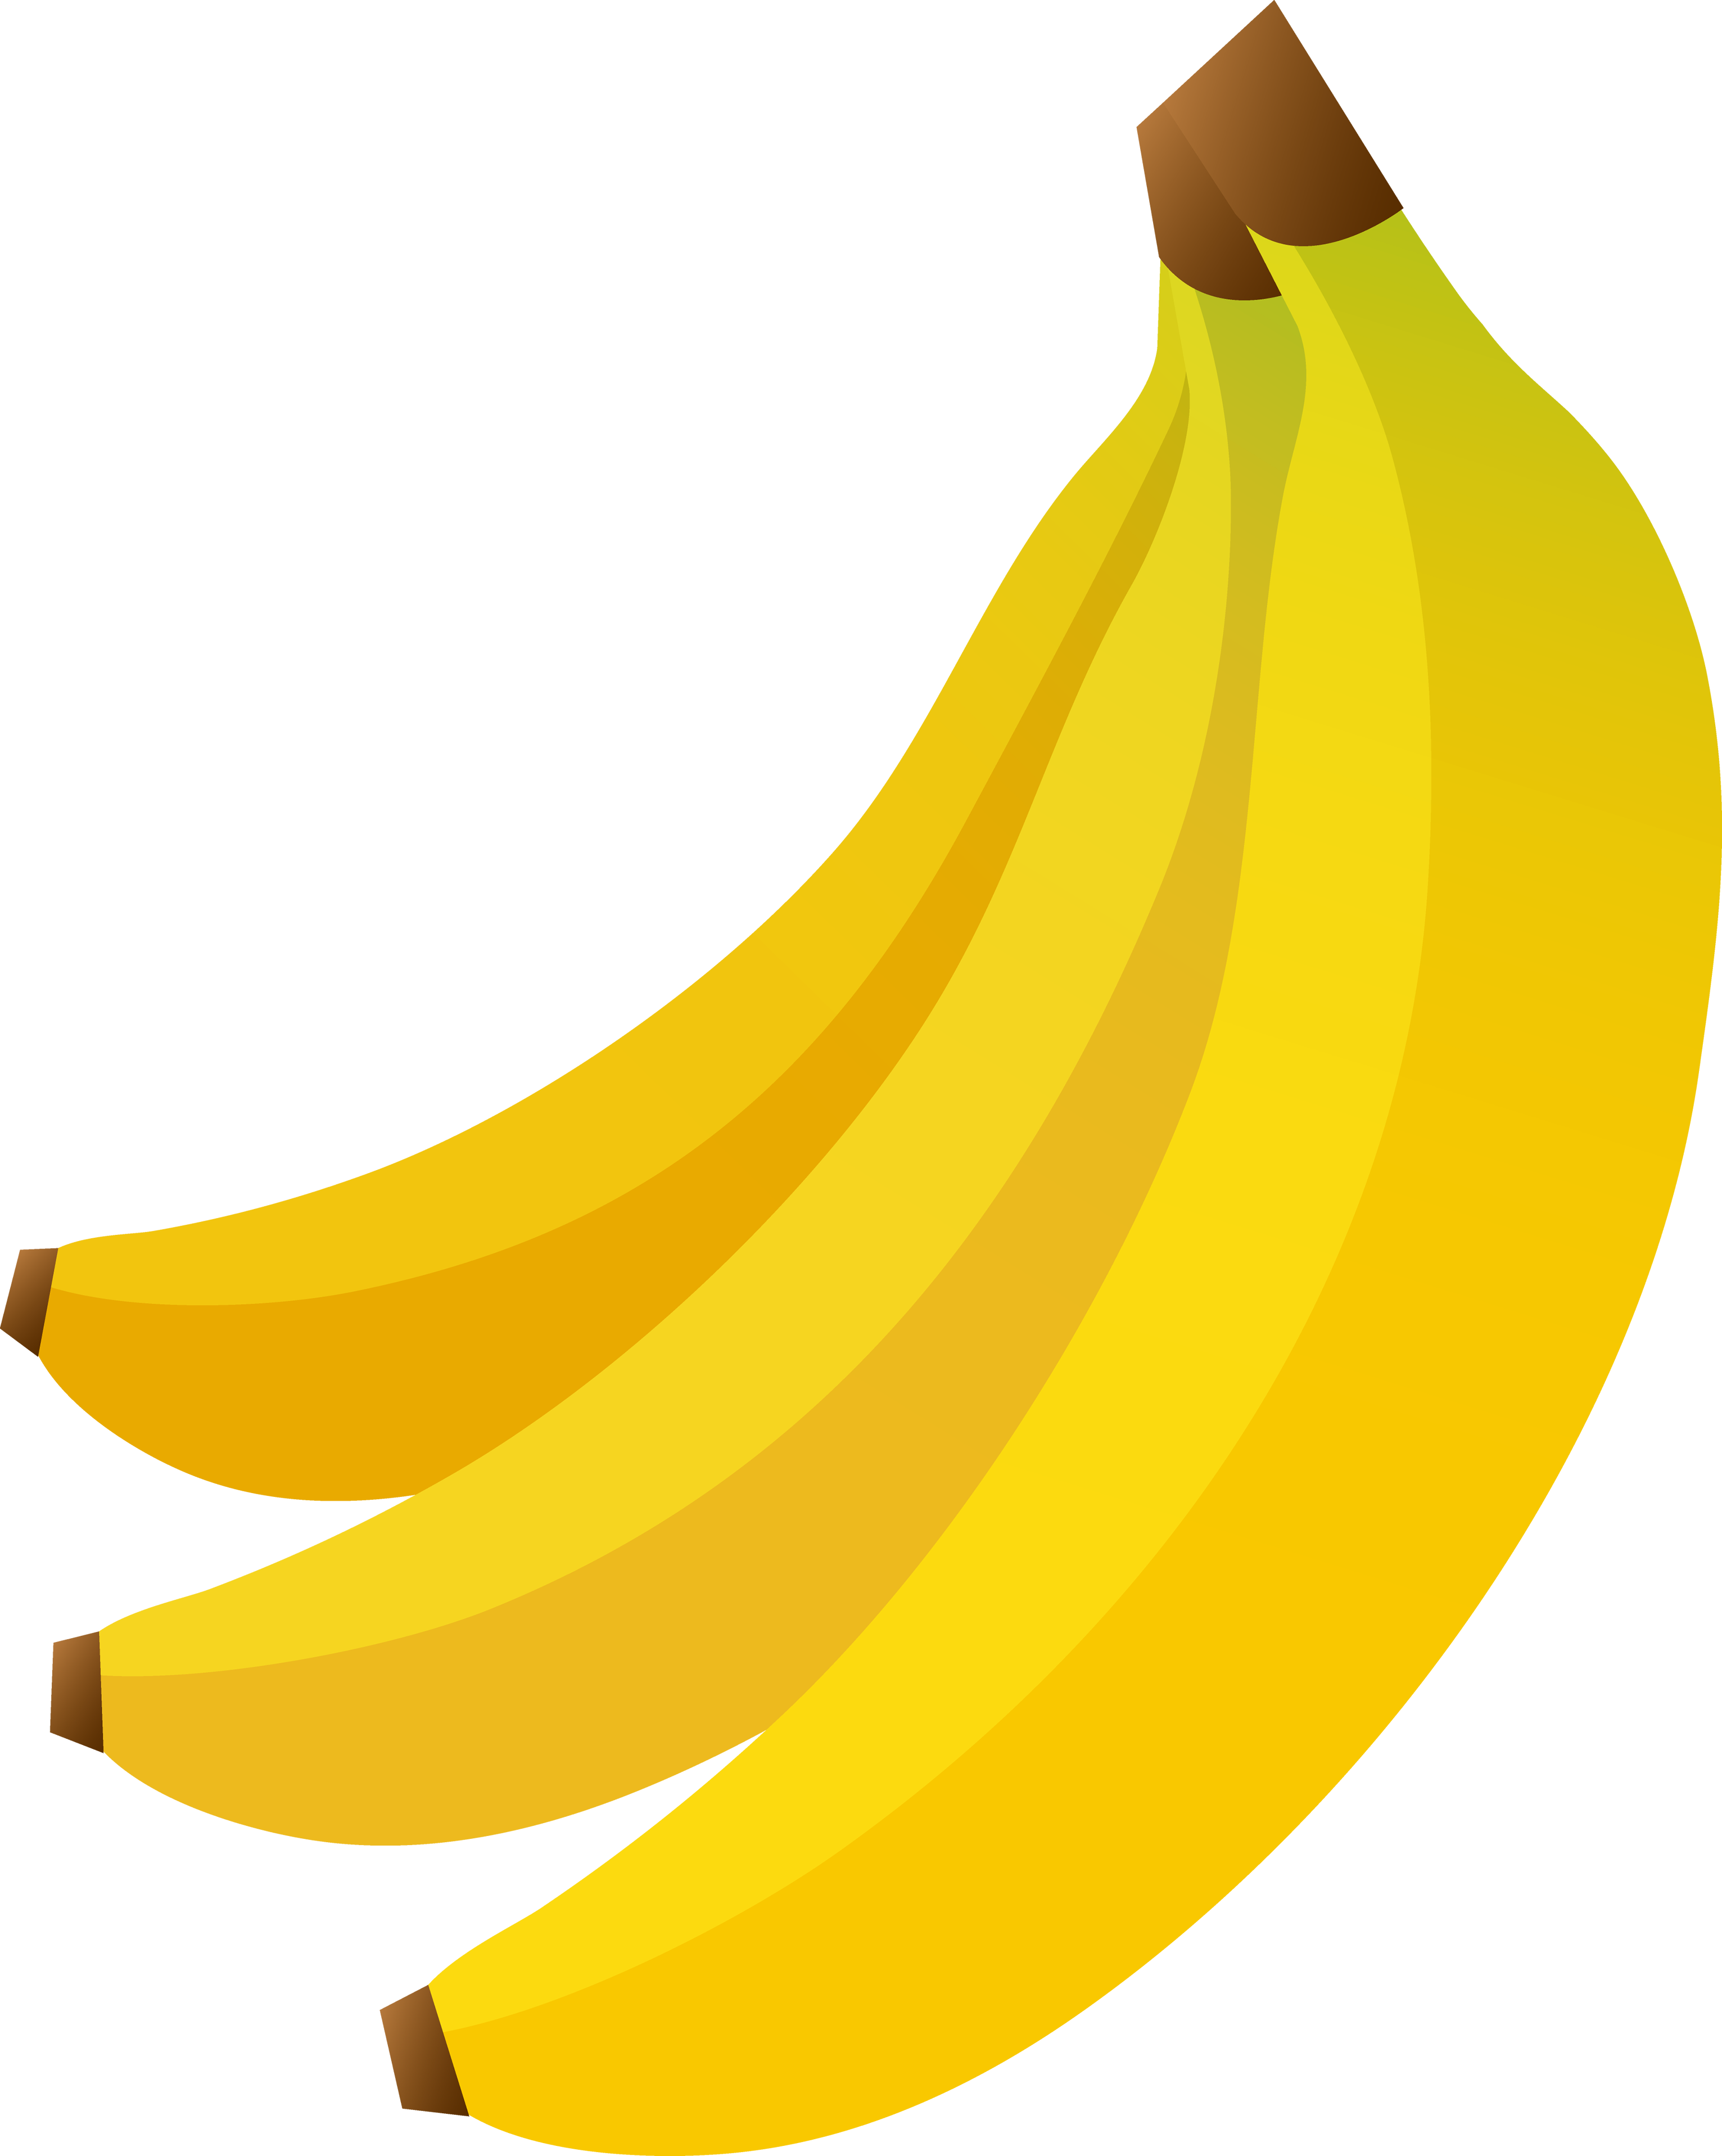 Banana bunches clipart banner free stock Banana PNG image, free picture downloads, bananas banner free stock